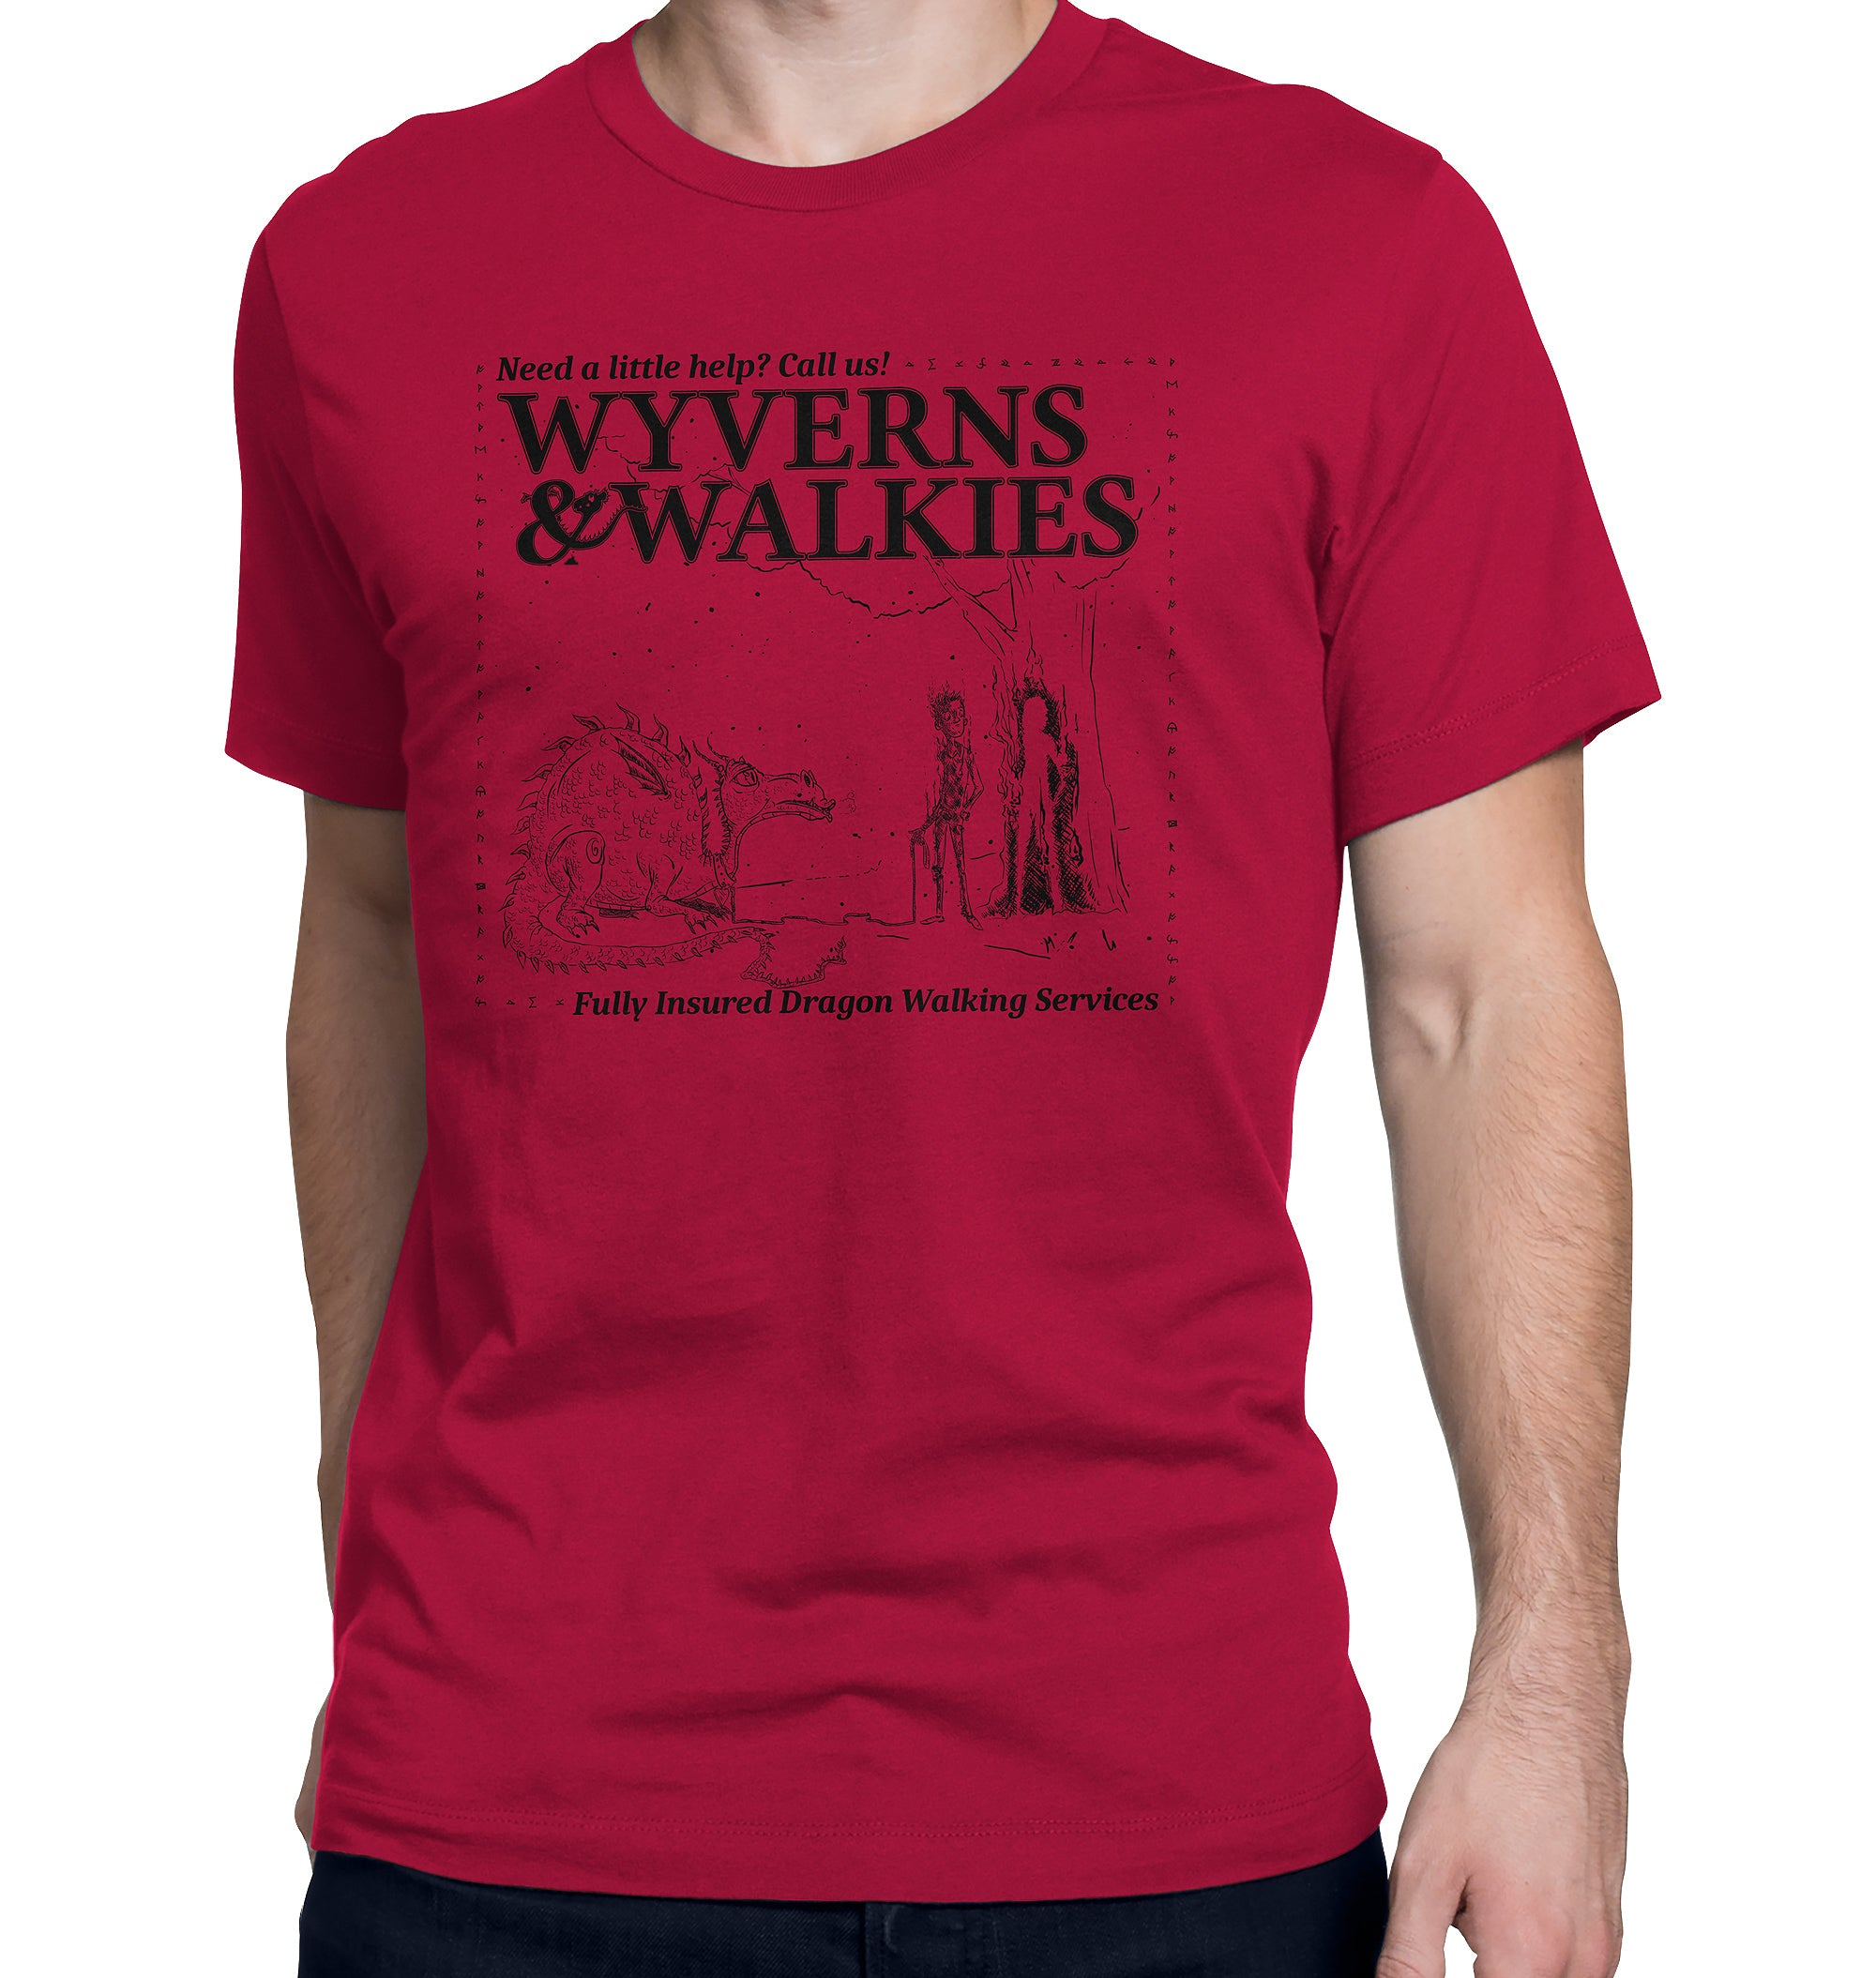 Wyverns and Walkies Dragon Walking Service T-Shirt